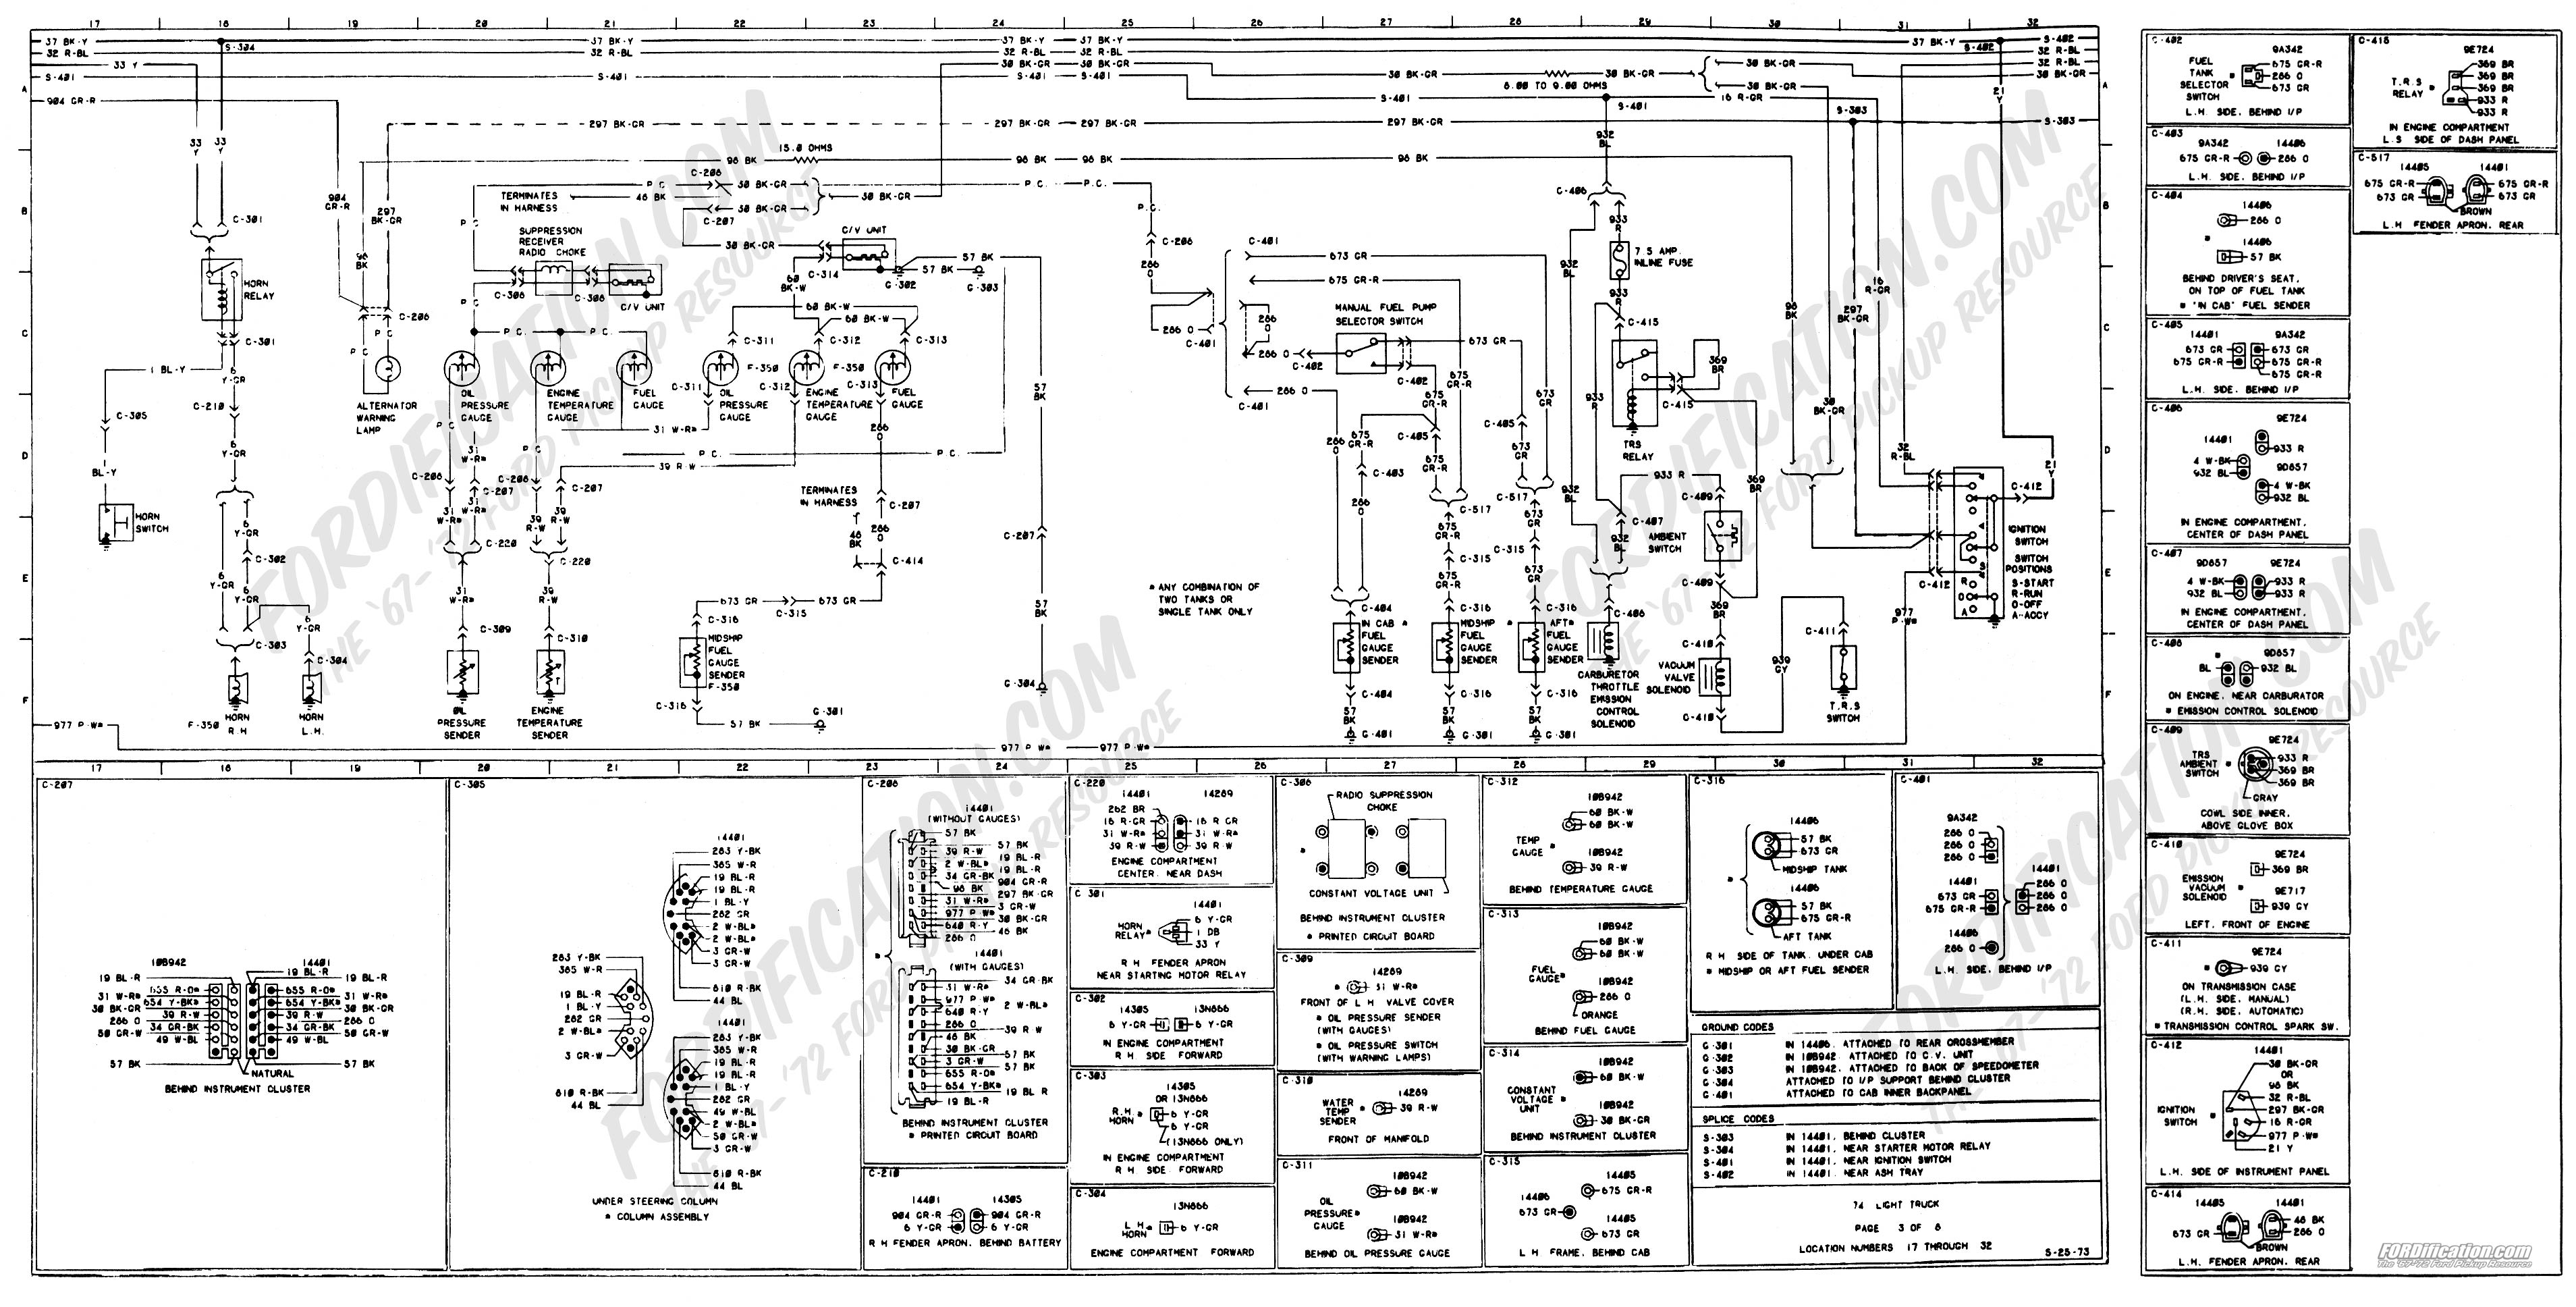 wiring_74master_3of8 1973 1979 ford truck wiring diagrams & schematics fordification net 2017 Ford Transit Connect Wagon at bakdesigns.co